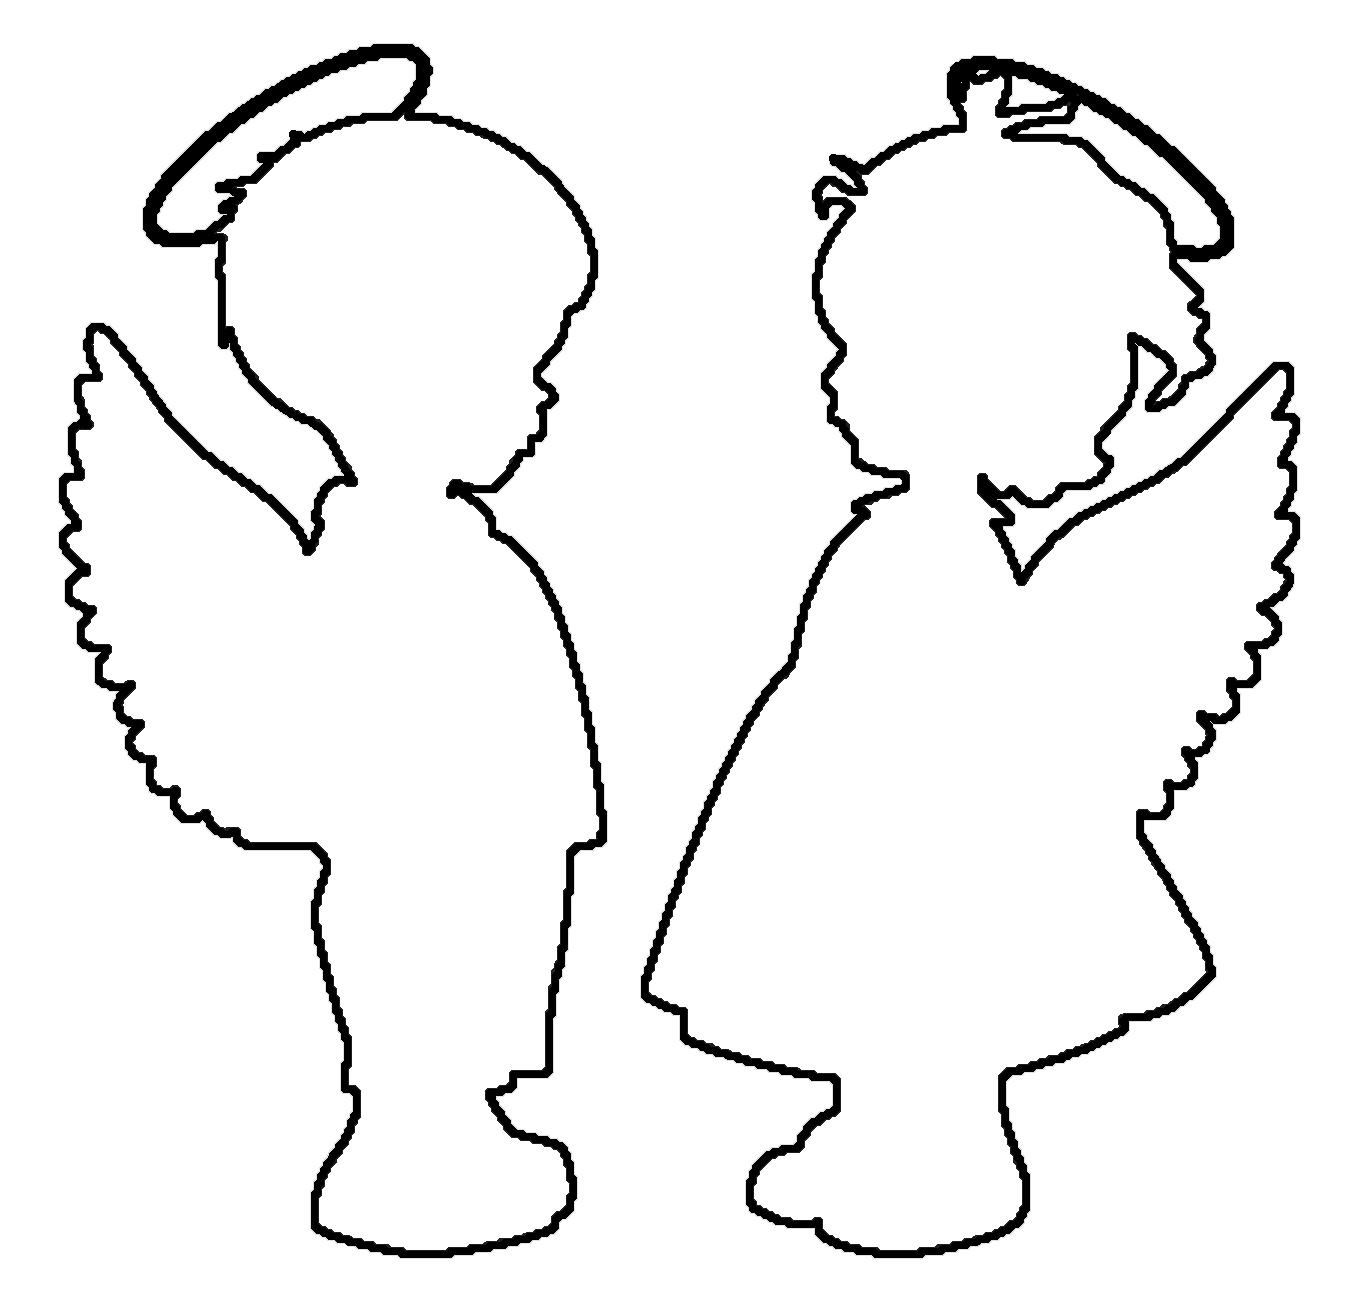 Coloring circuit angels circuit pattern to cut paper for children